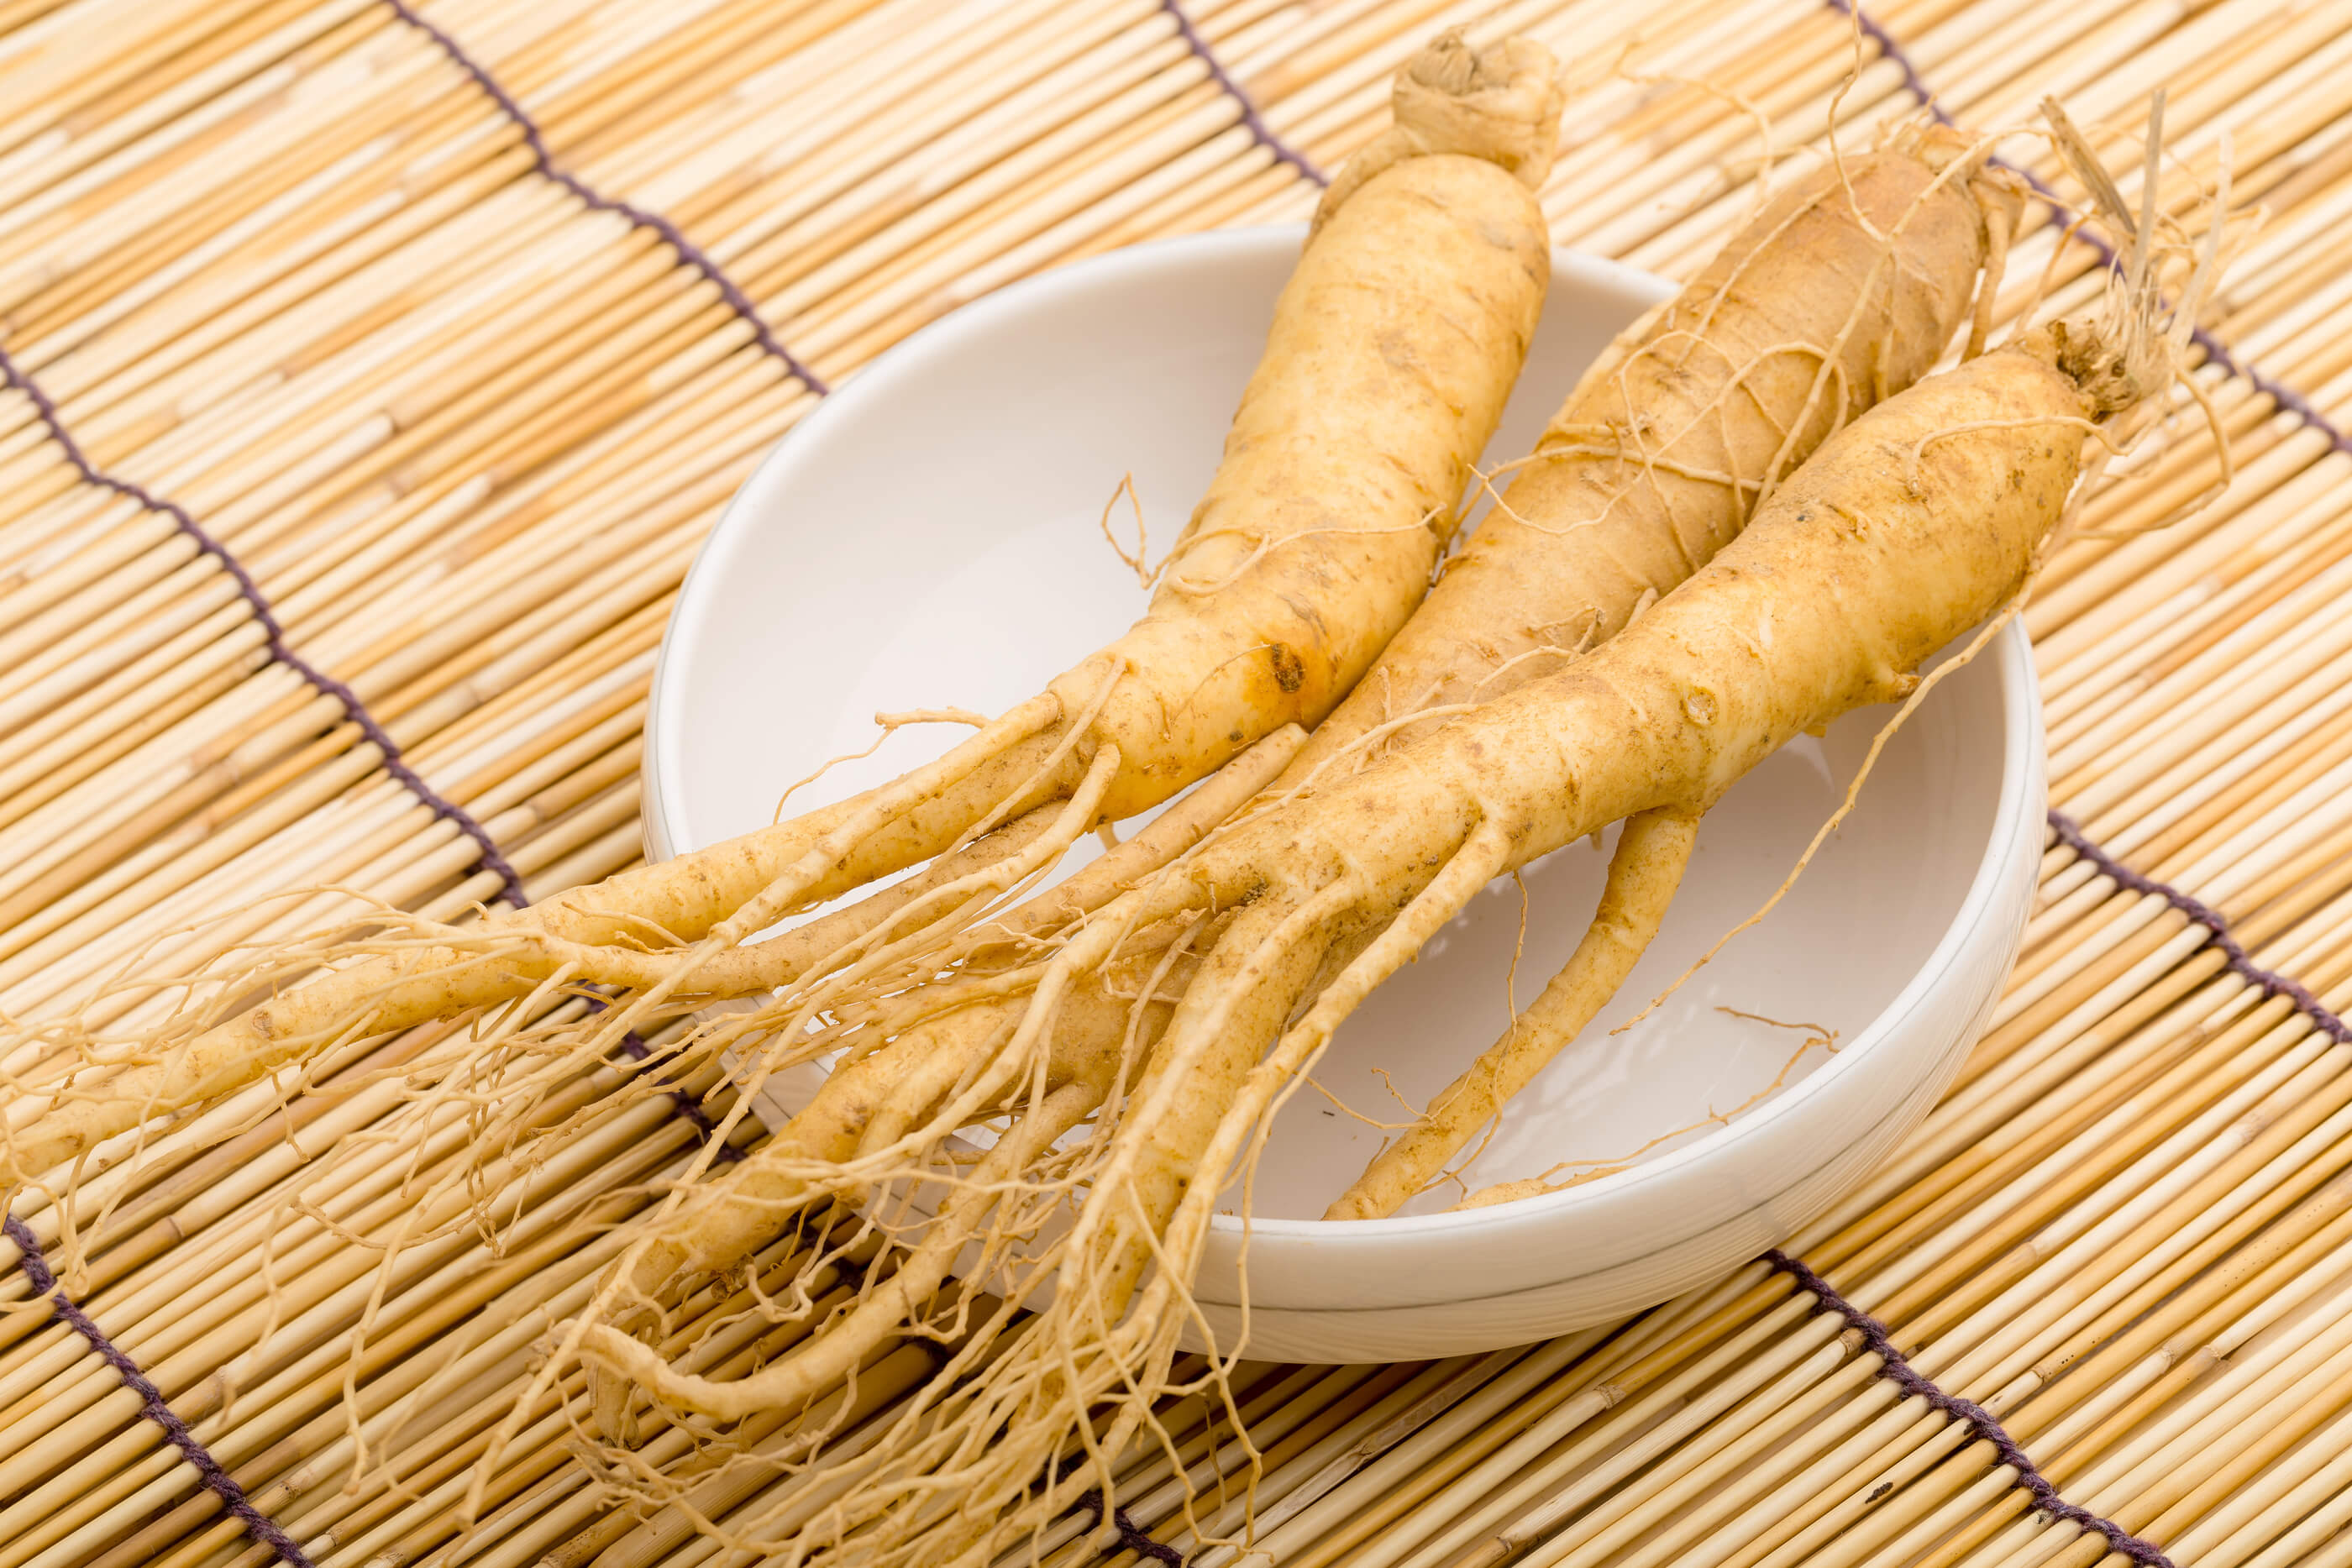 Ginseng, Popular Chinese Herb May Not be Healthy